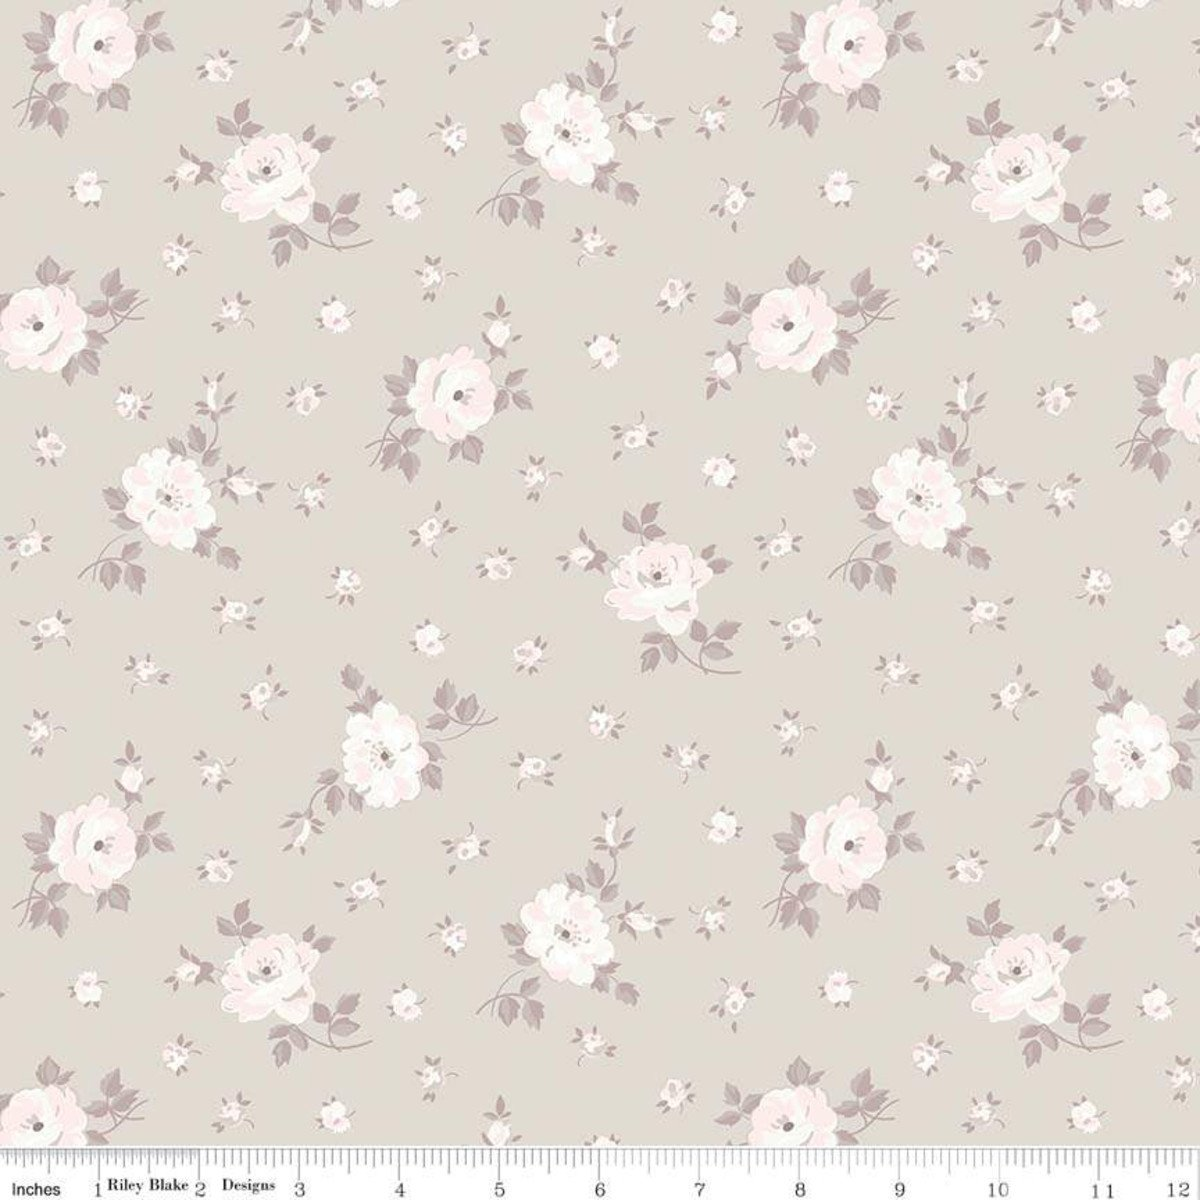 C7685-TAUPE_Floral Toss Rose Garden